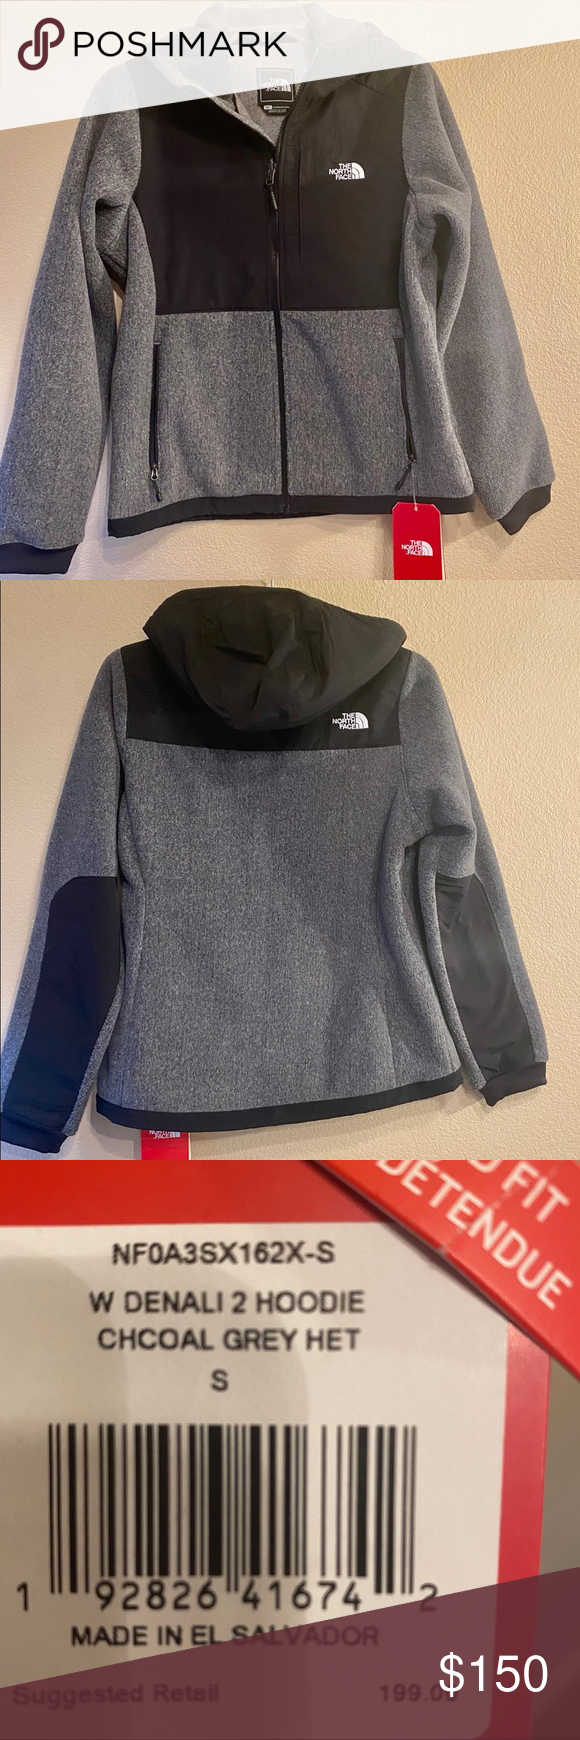 North Face Jacket Hoodie Denali 2 The North Face Dinali To Hoodie Thick Fabric Beautiful Charcoal Gray Color North Face Jacket Hoodie Jacket The North Face [ 1740 x 580 Pixel ]